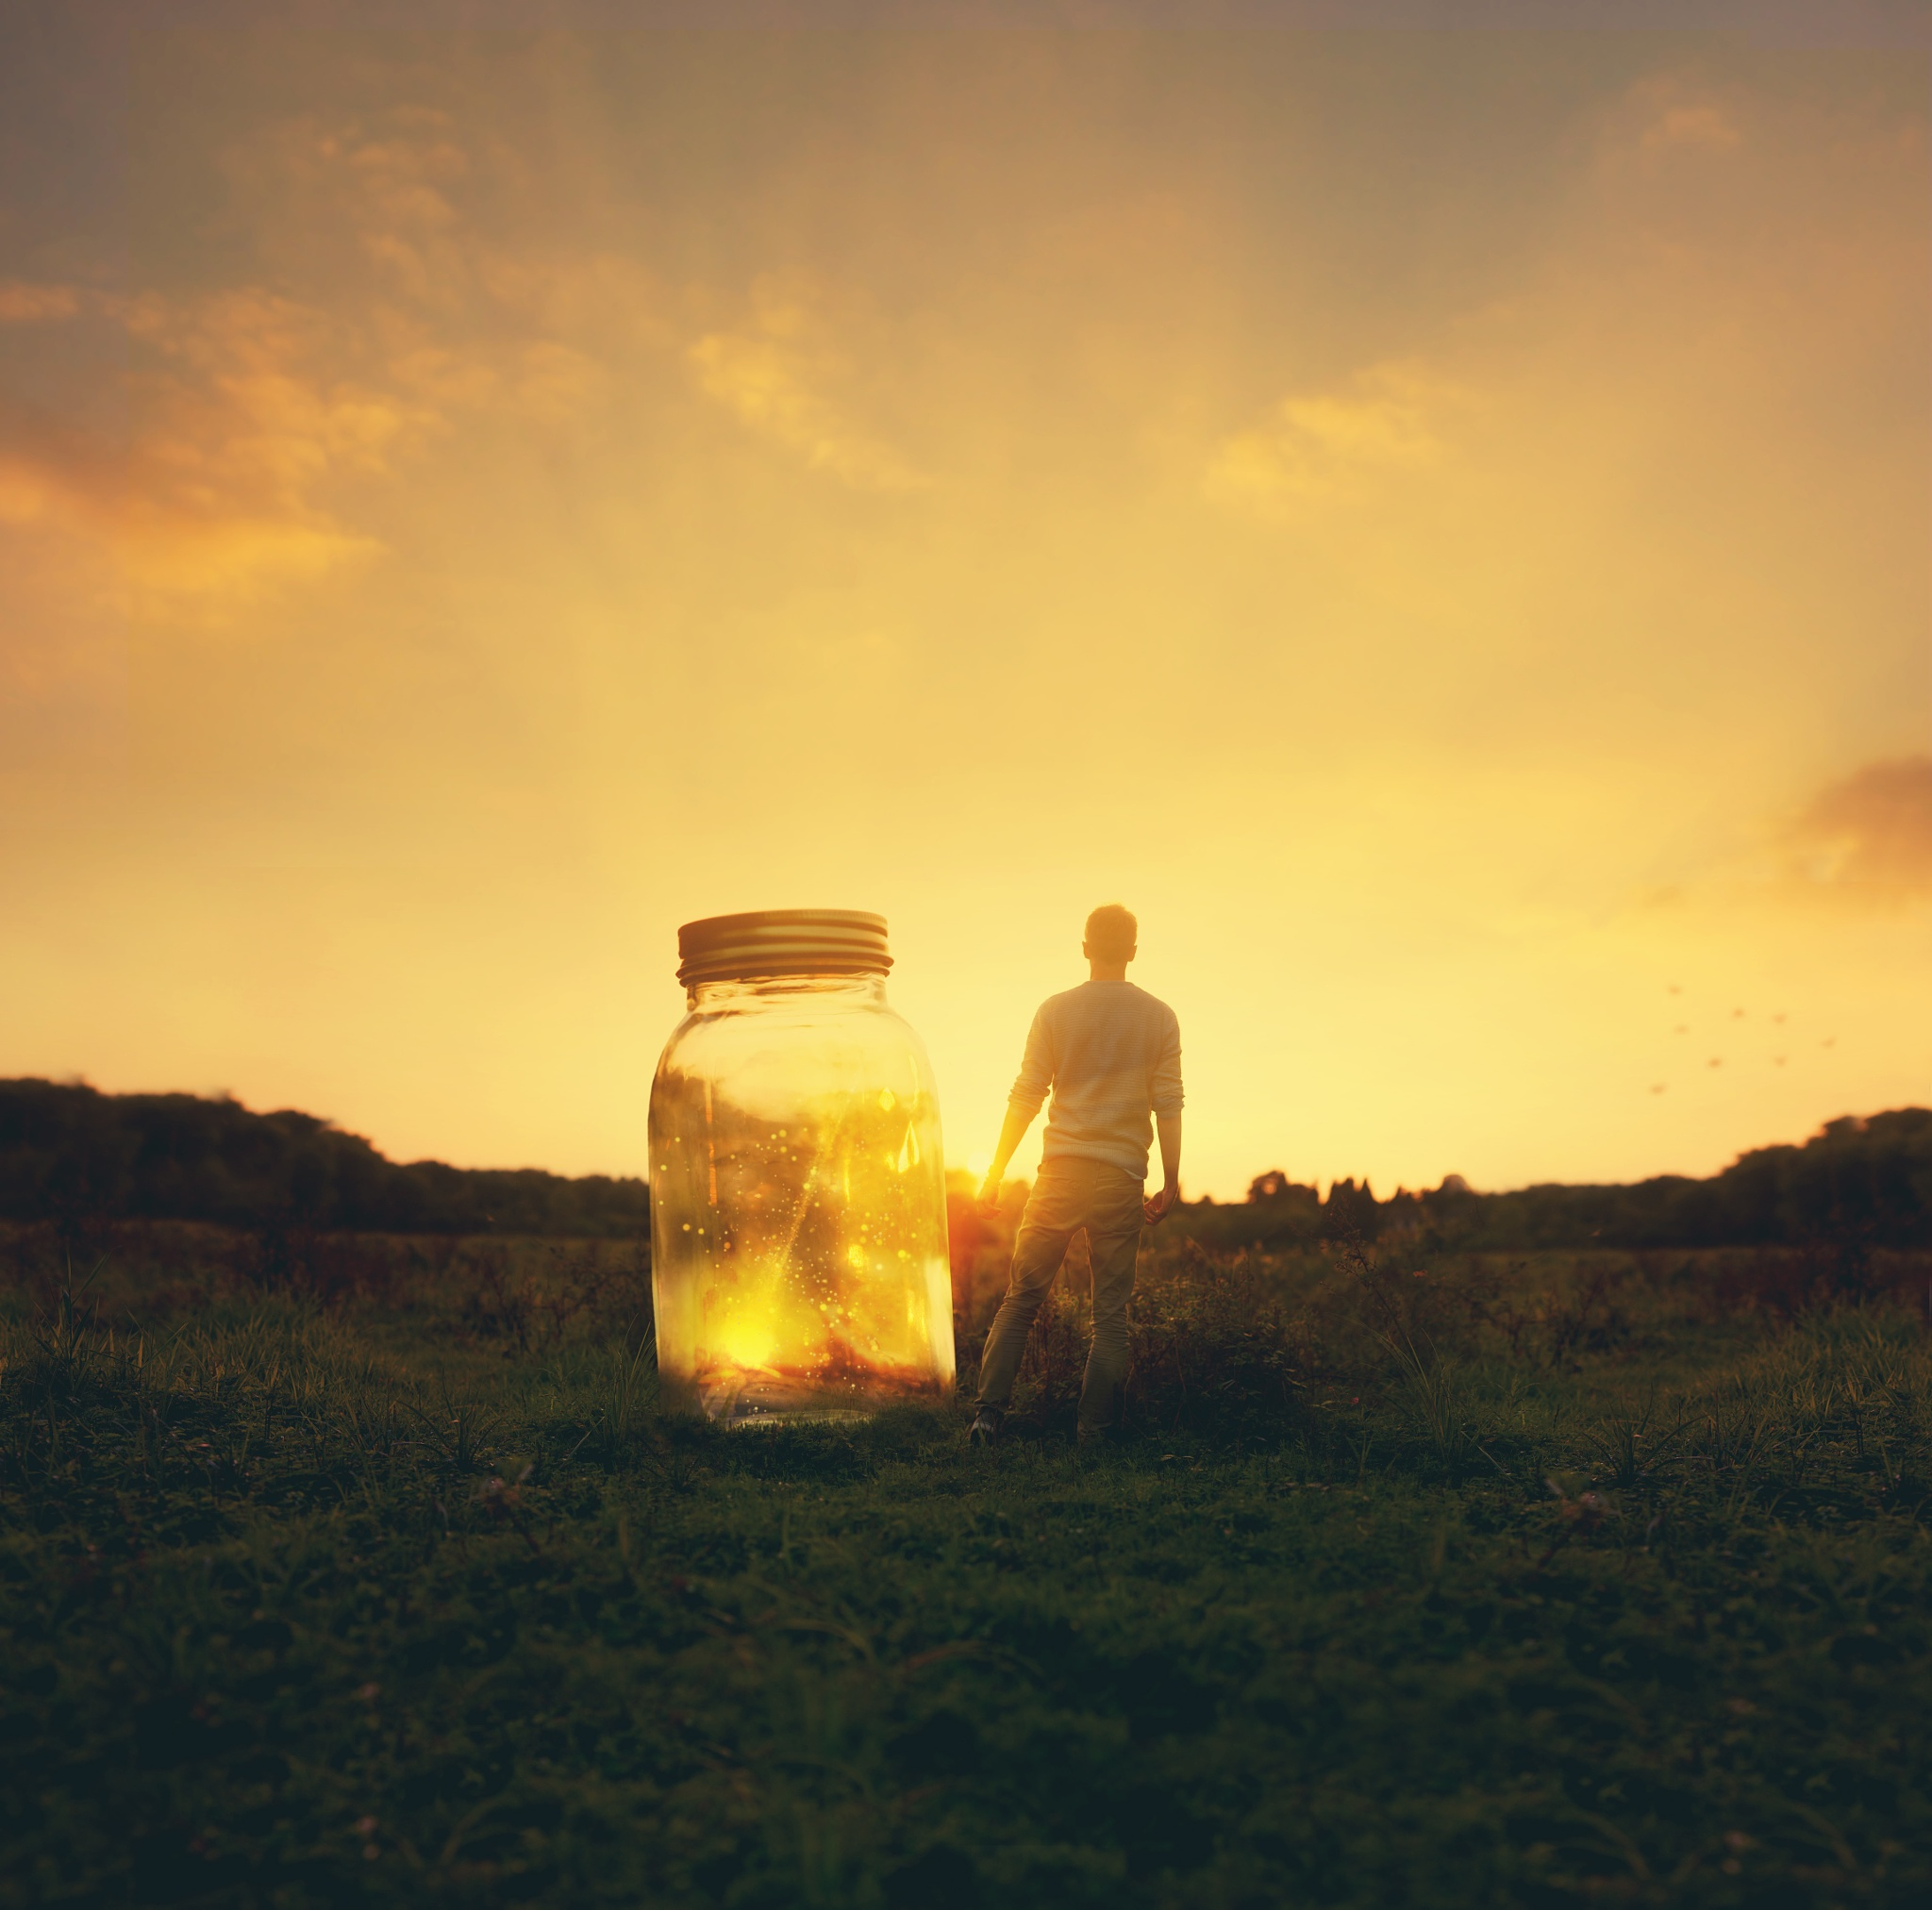 Sun Is Shining And So Are You by Joel Robison